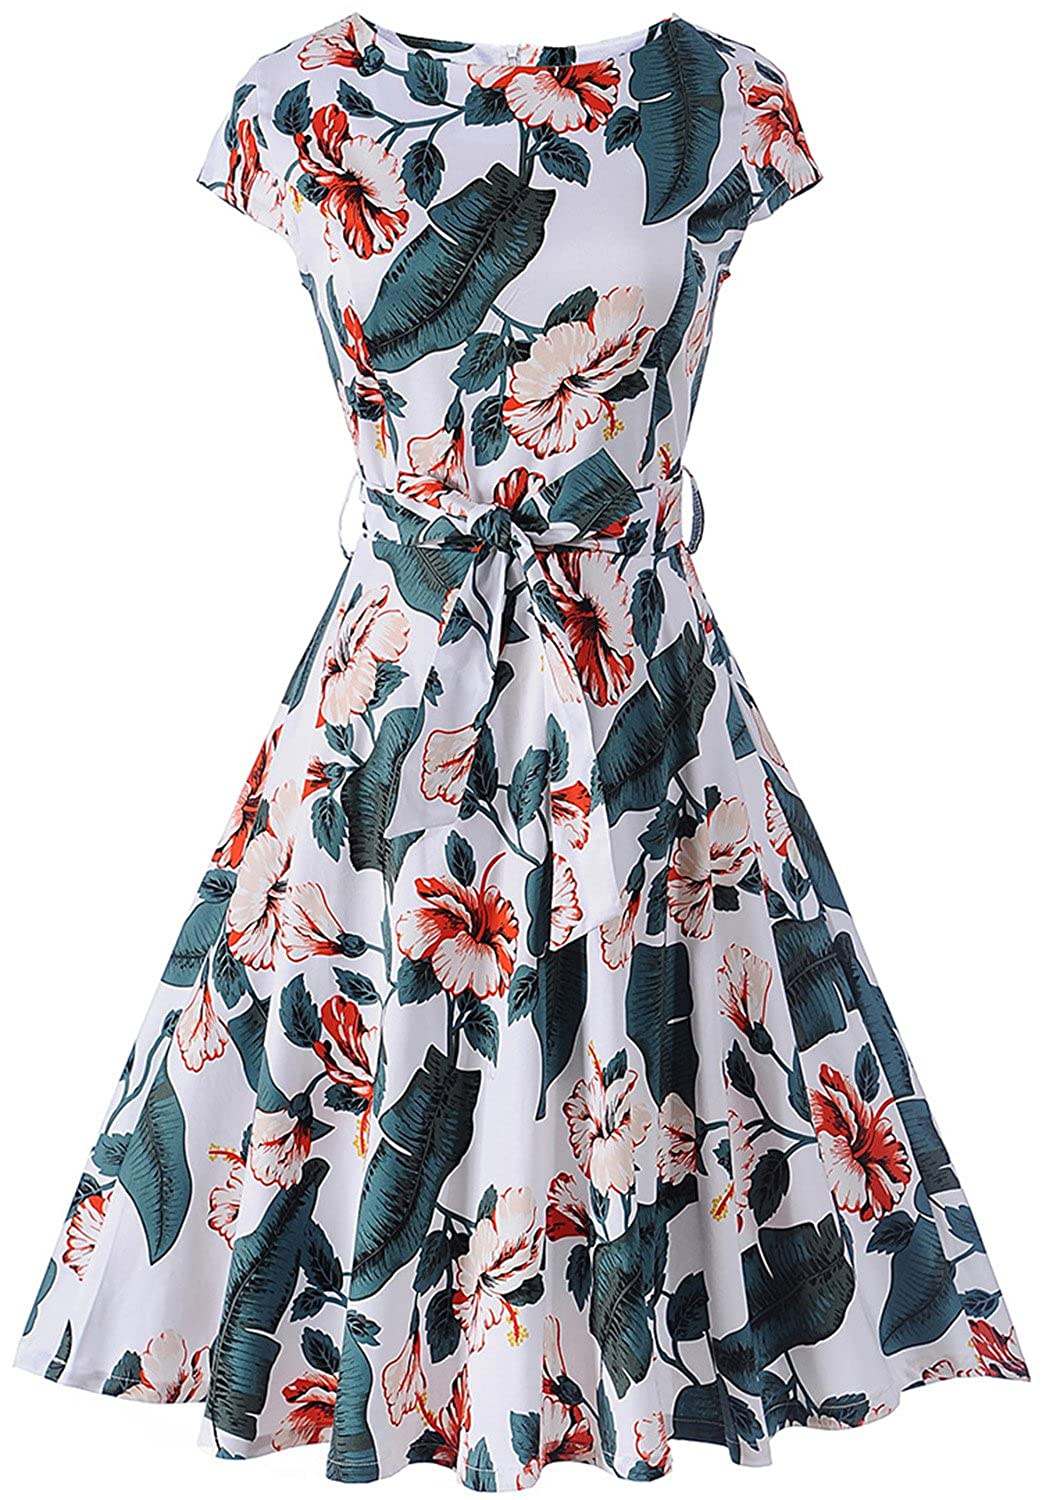 498c739f475d9 Features: Cap-Sleeve & Full Circle Flared Skirt, Concealed Zipper At Back,  , Comes With a Removable Sash. The a Line Dress Is ...